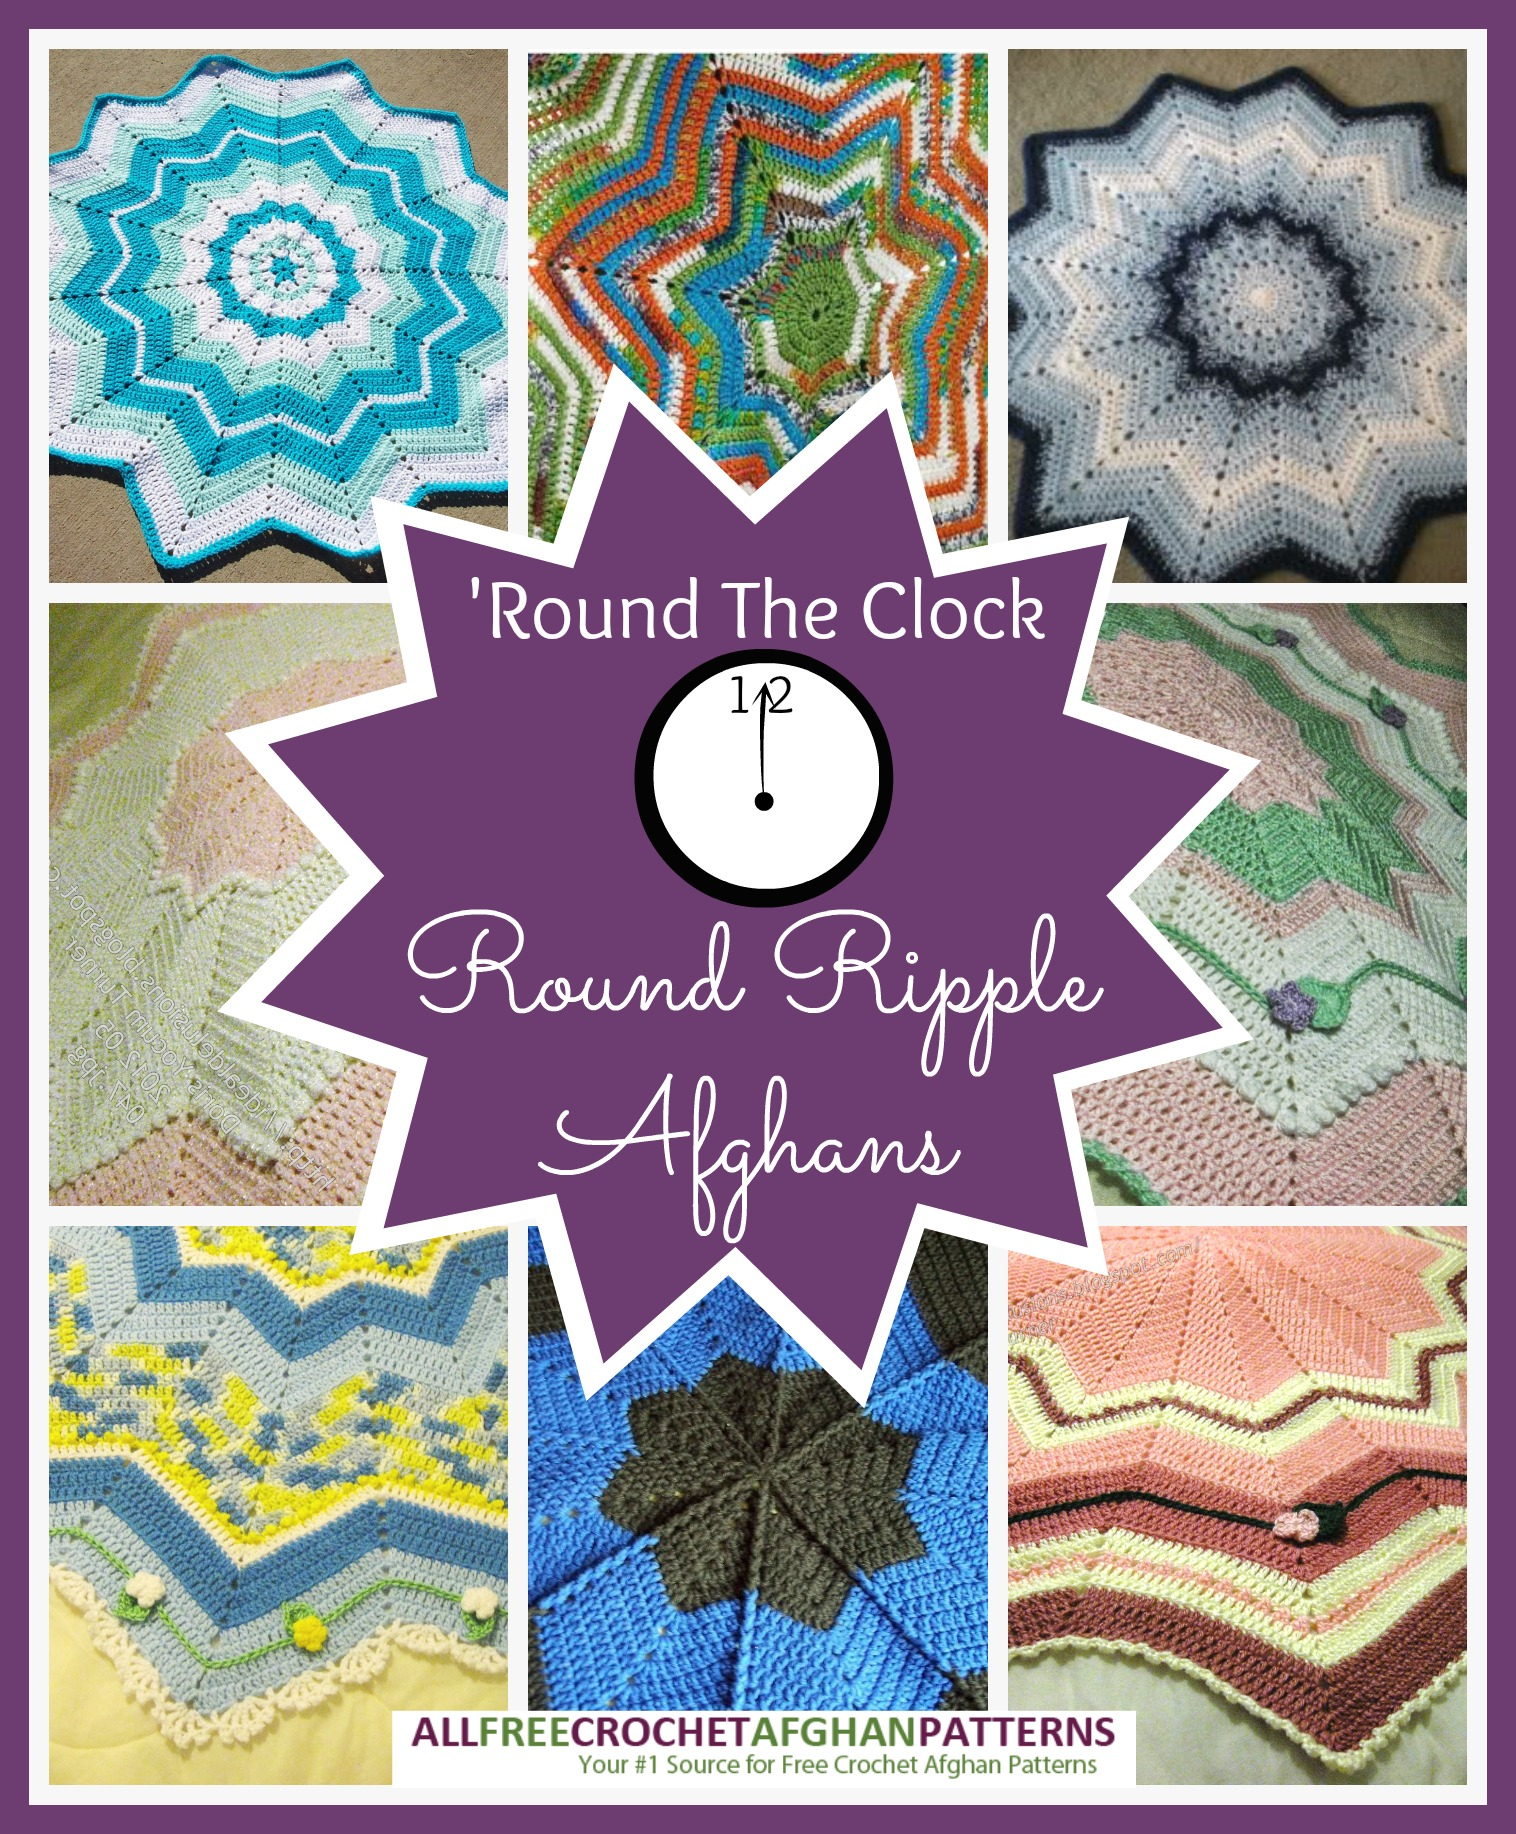 Round The Clock 12 Round Ripple Afghans Stitch And Unwind